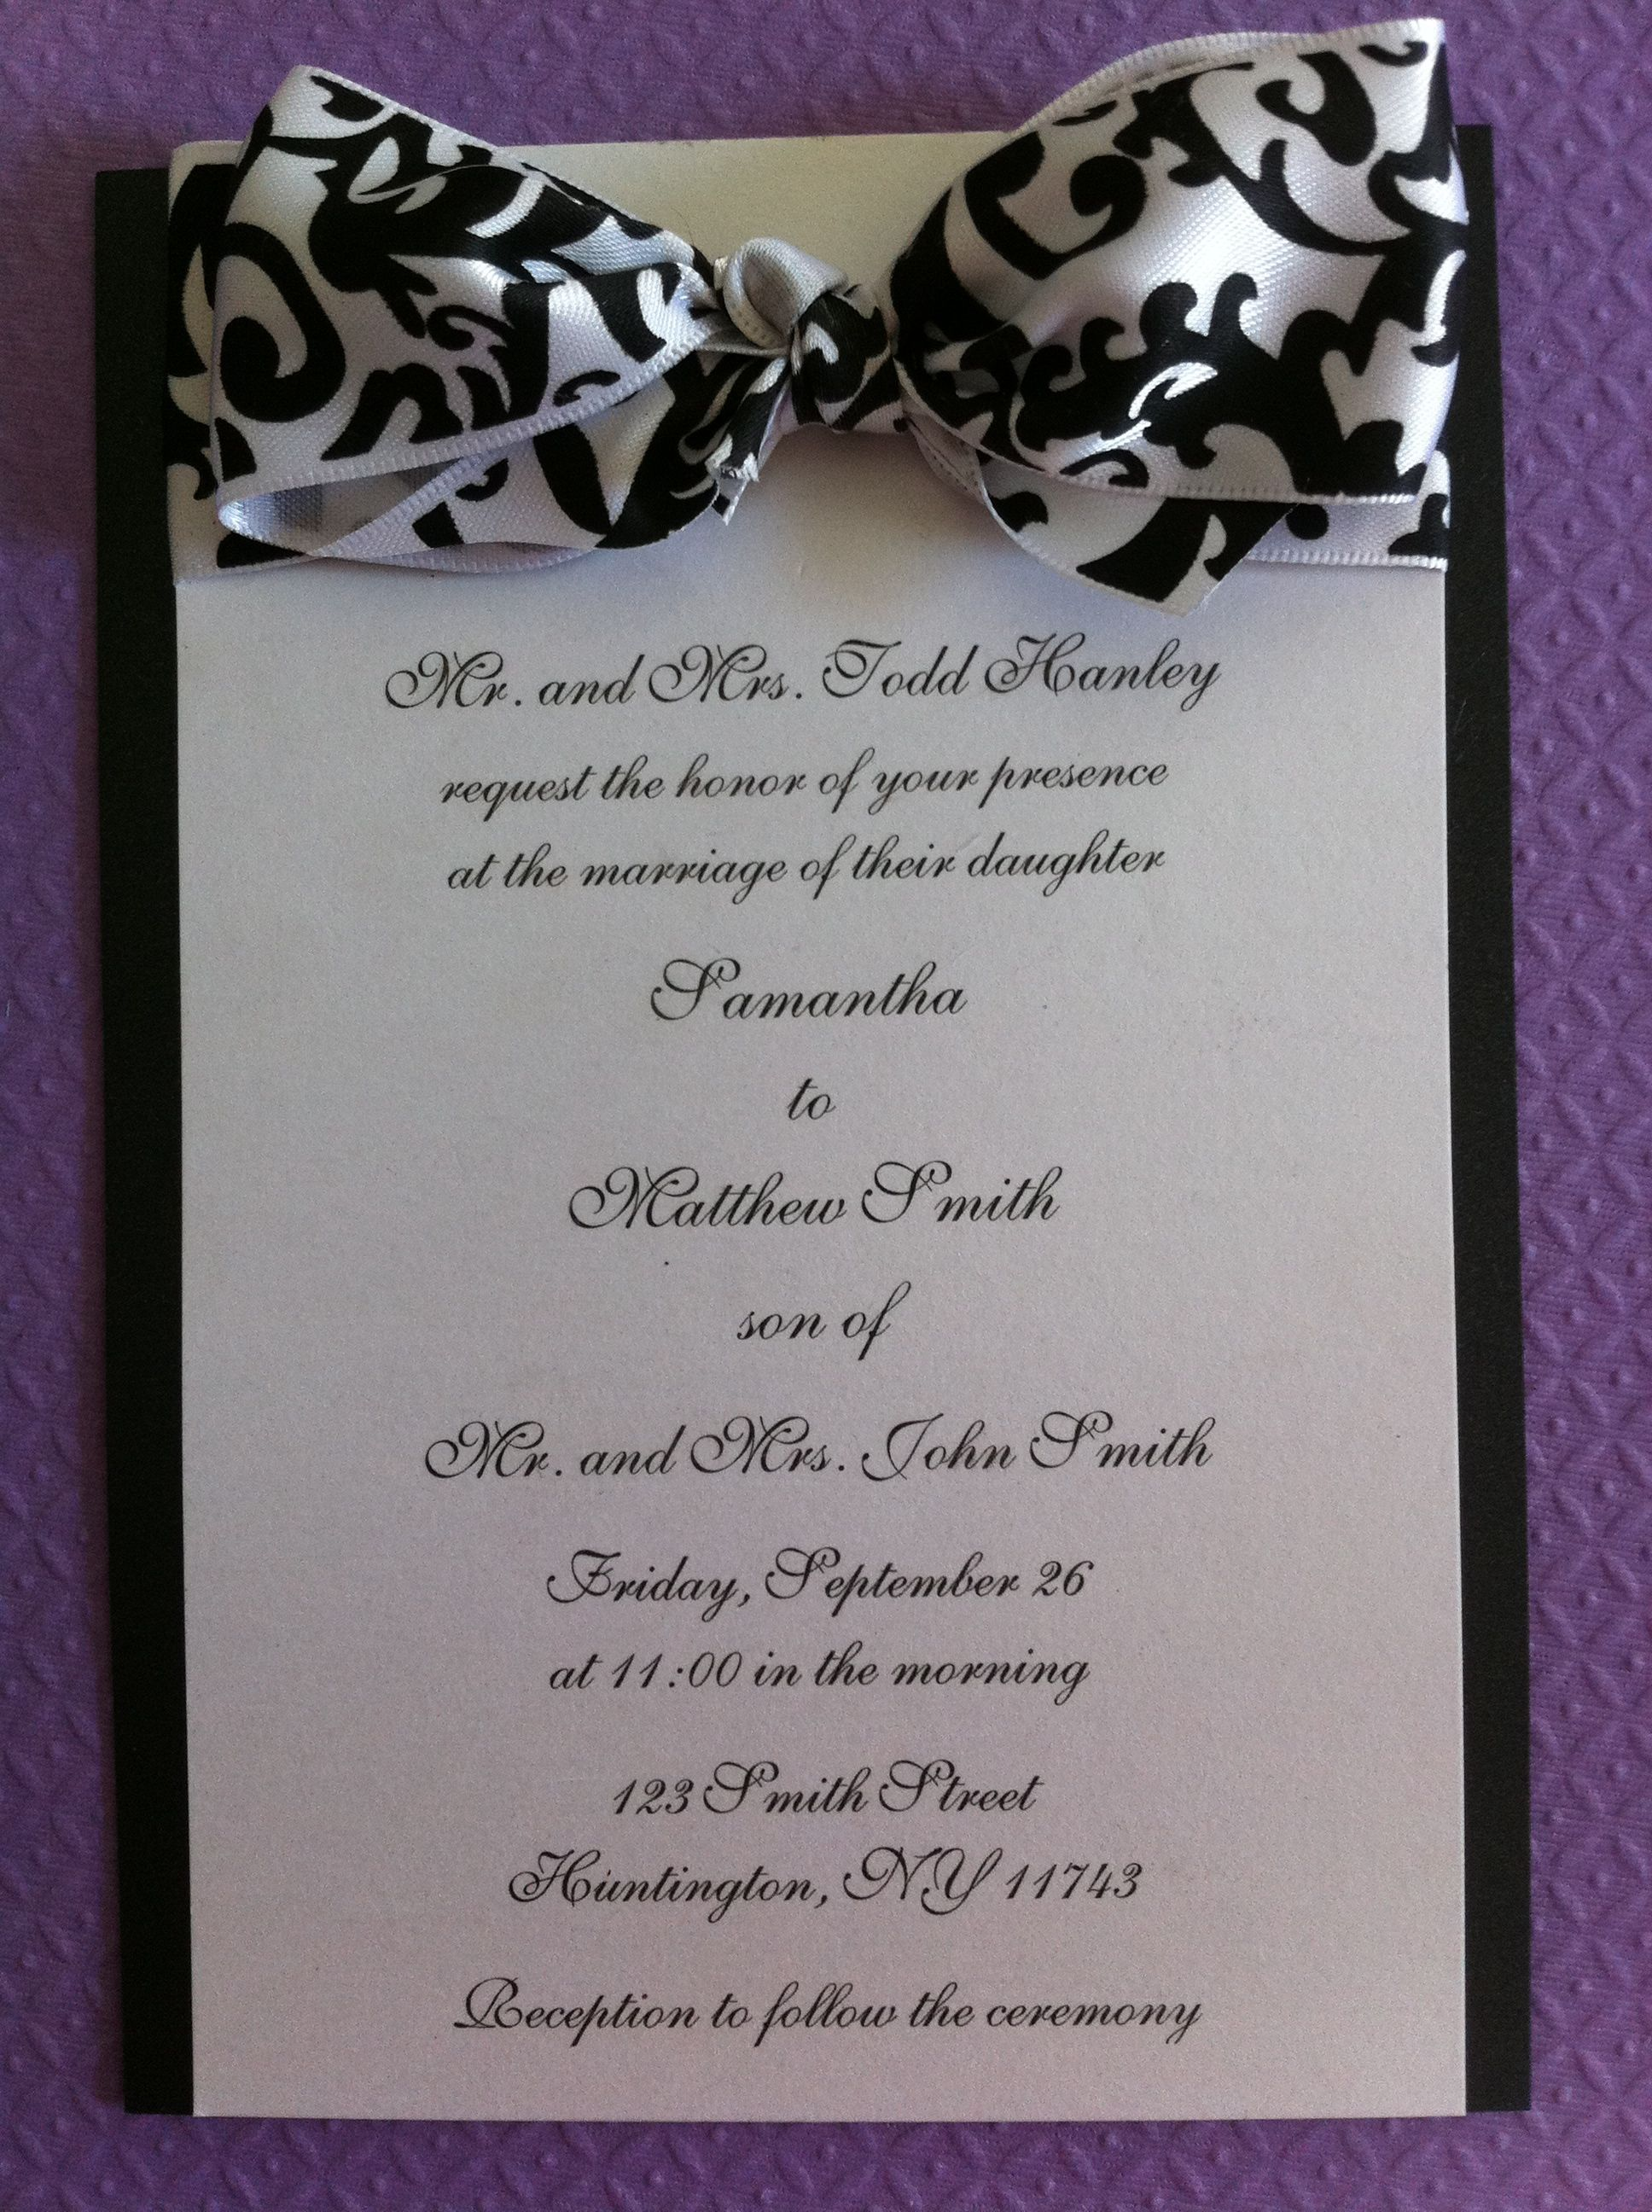 A Fun Formal Invite To Match A Formal Black And White Affair